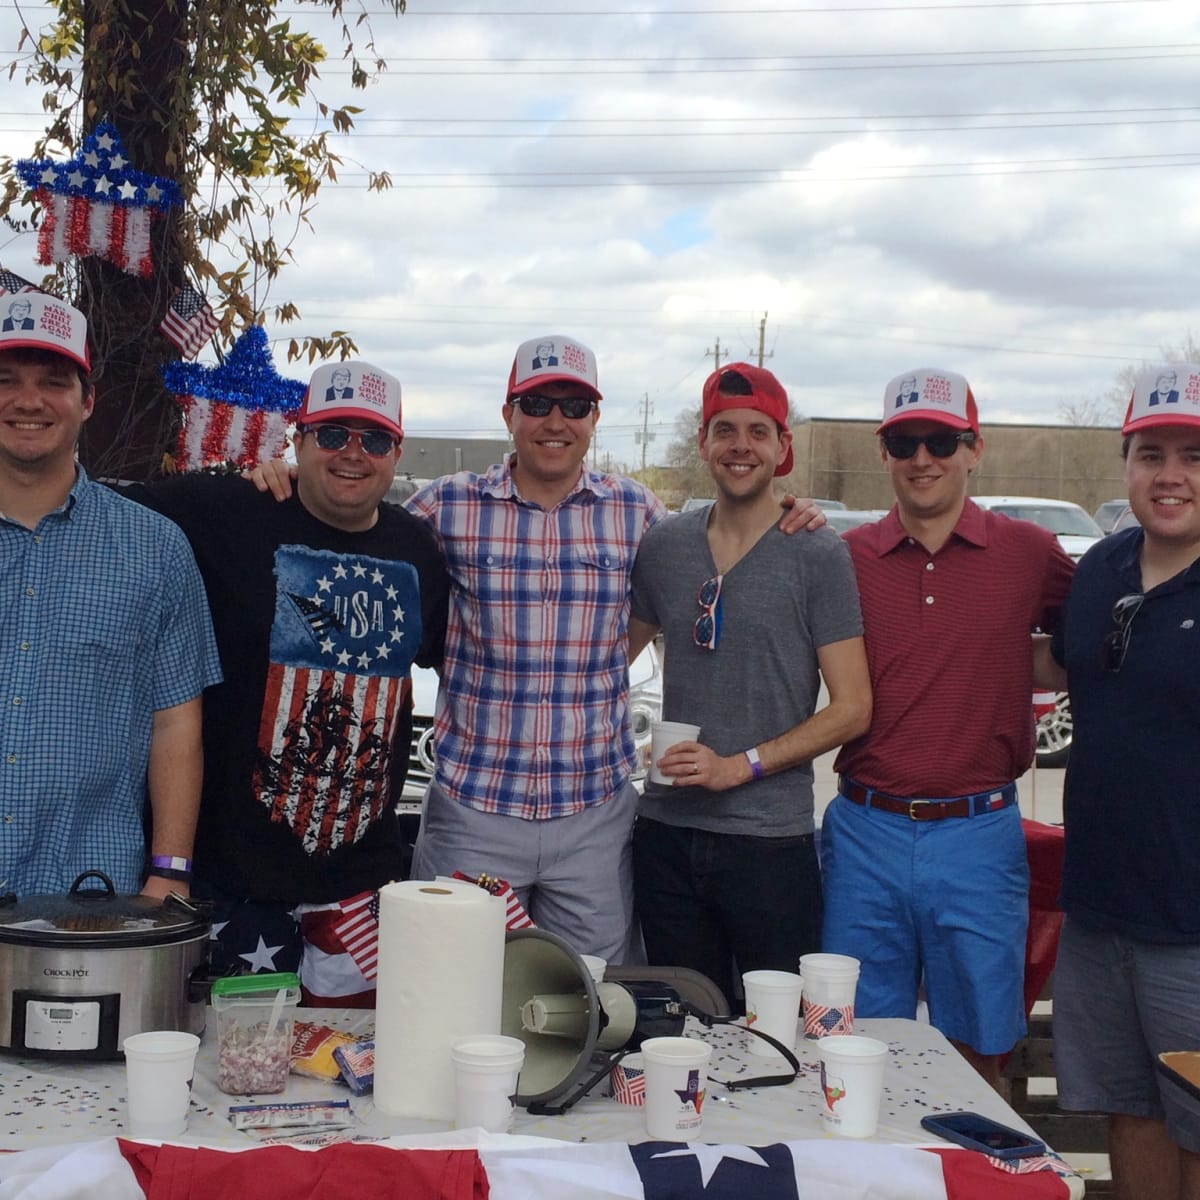 Casa de Esperanza chili cook-off, March 2016, Boran Buturovic, Blake Aston, Mikey Gough, Seth Hurwitz, Paul Ribe, Will Speer